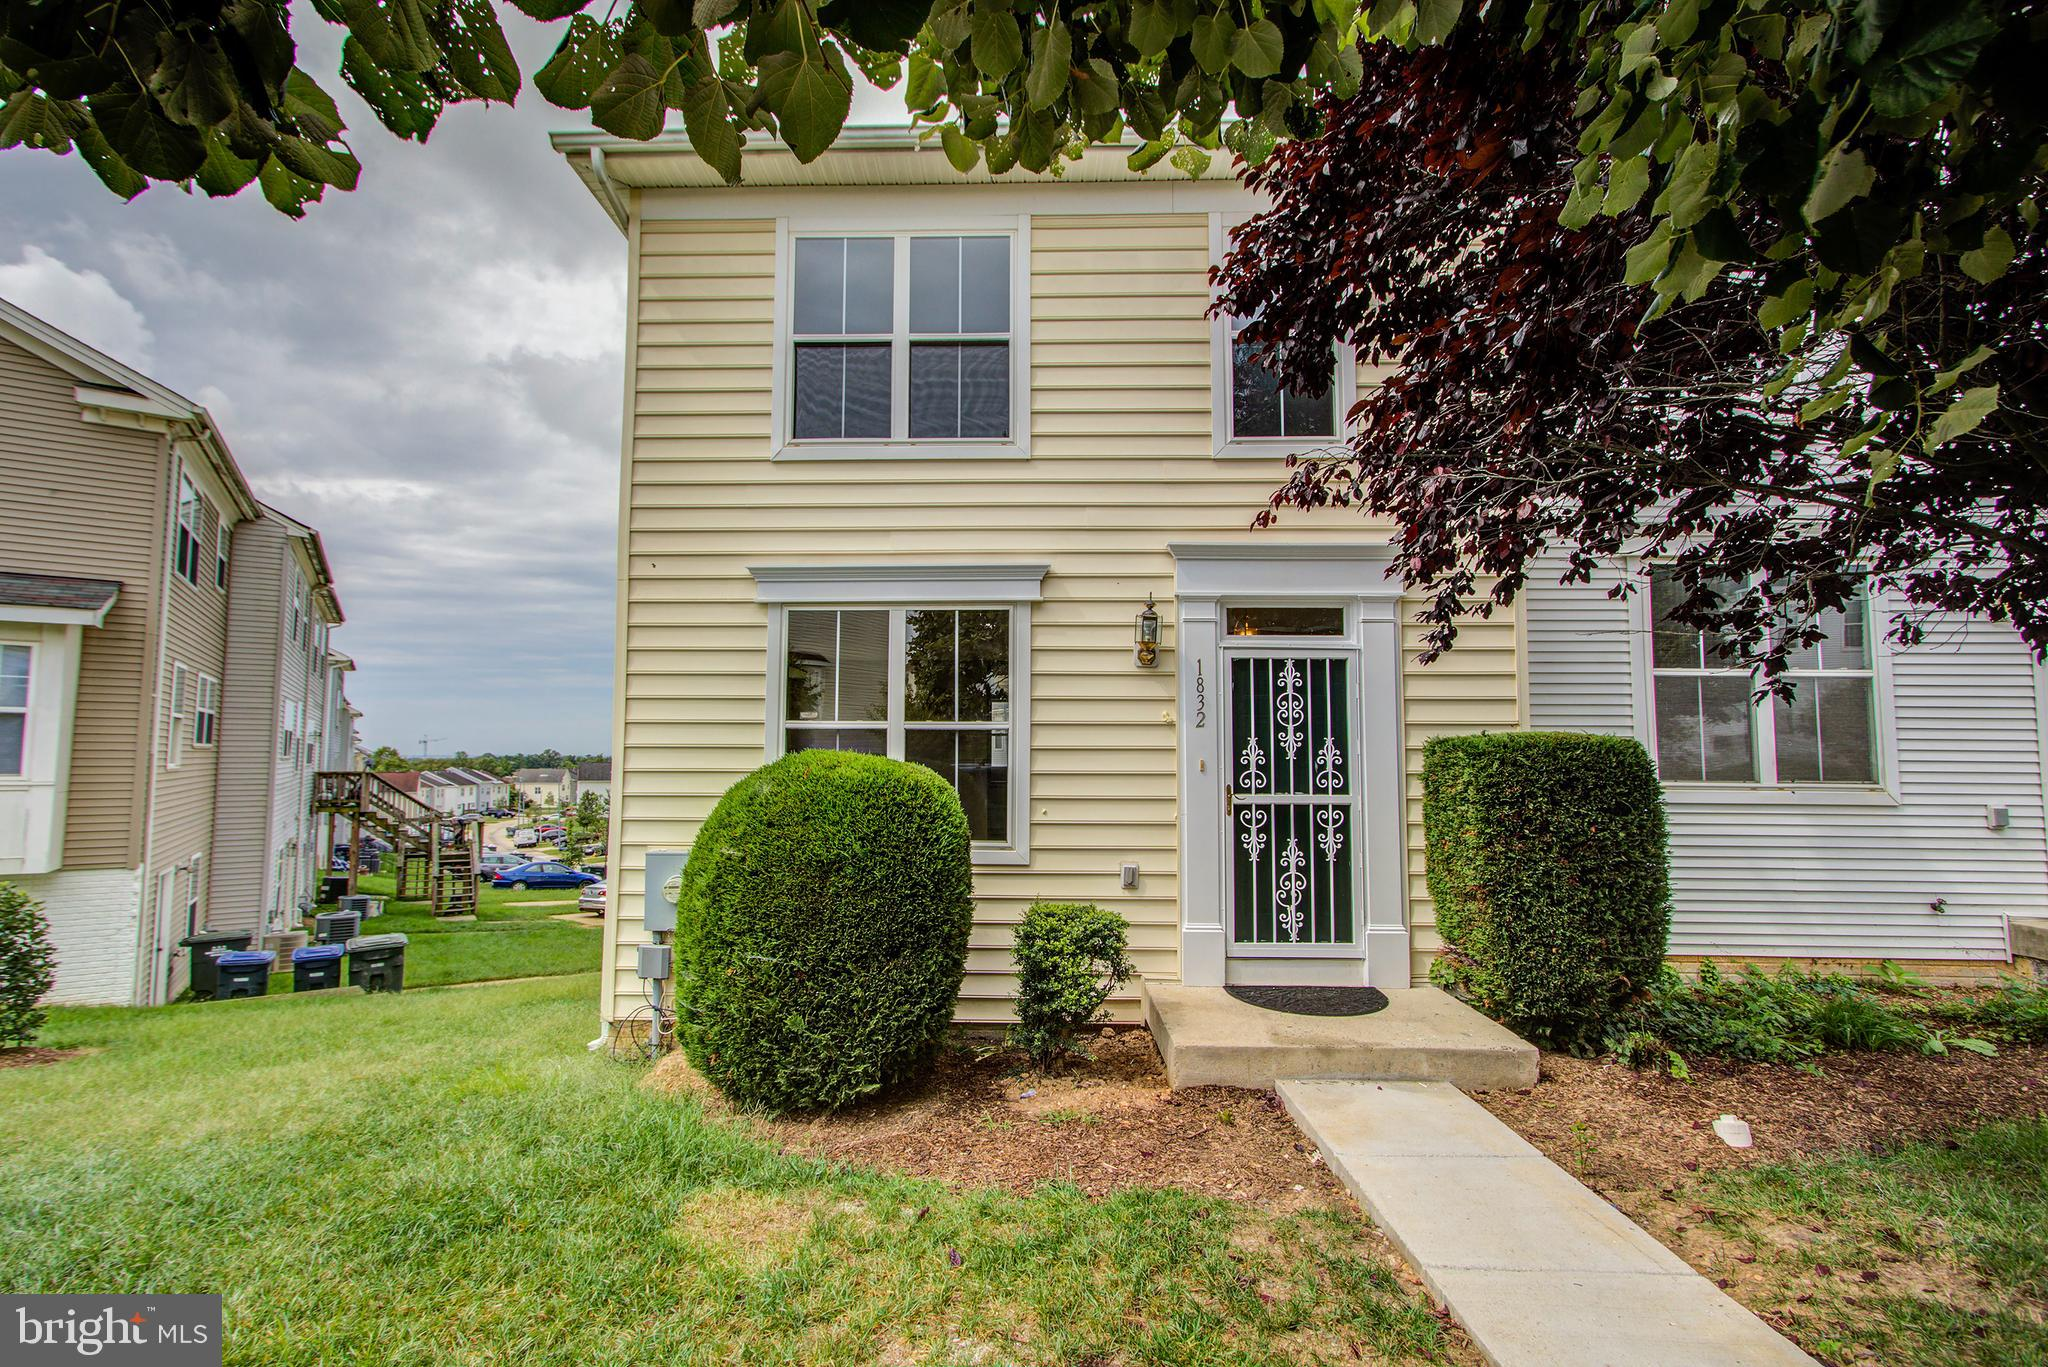 HENSON RIDGE TOWNHOME SUBDIVISION WELCOMES YOU TO THIS GORGEOUS END UNIT,  THREE-LEVEL TOWN-HOME IN